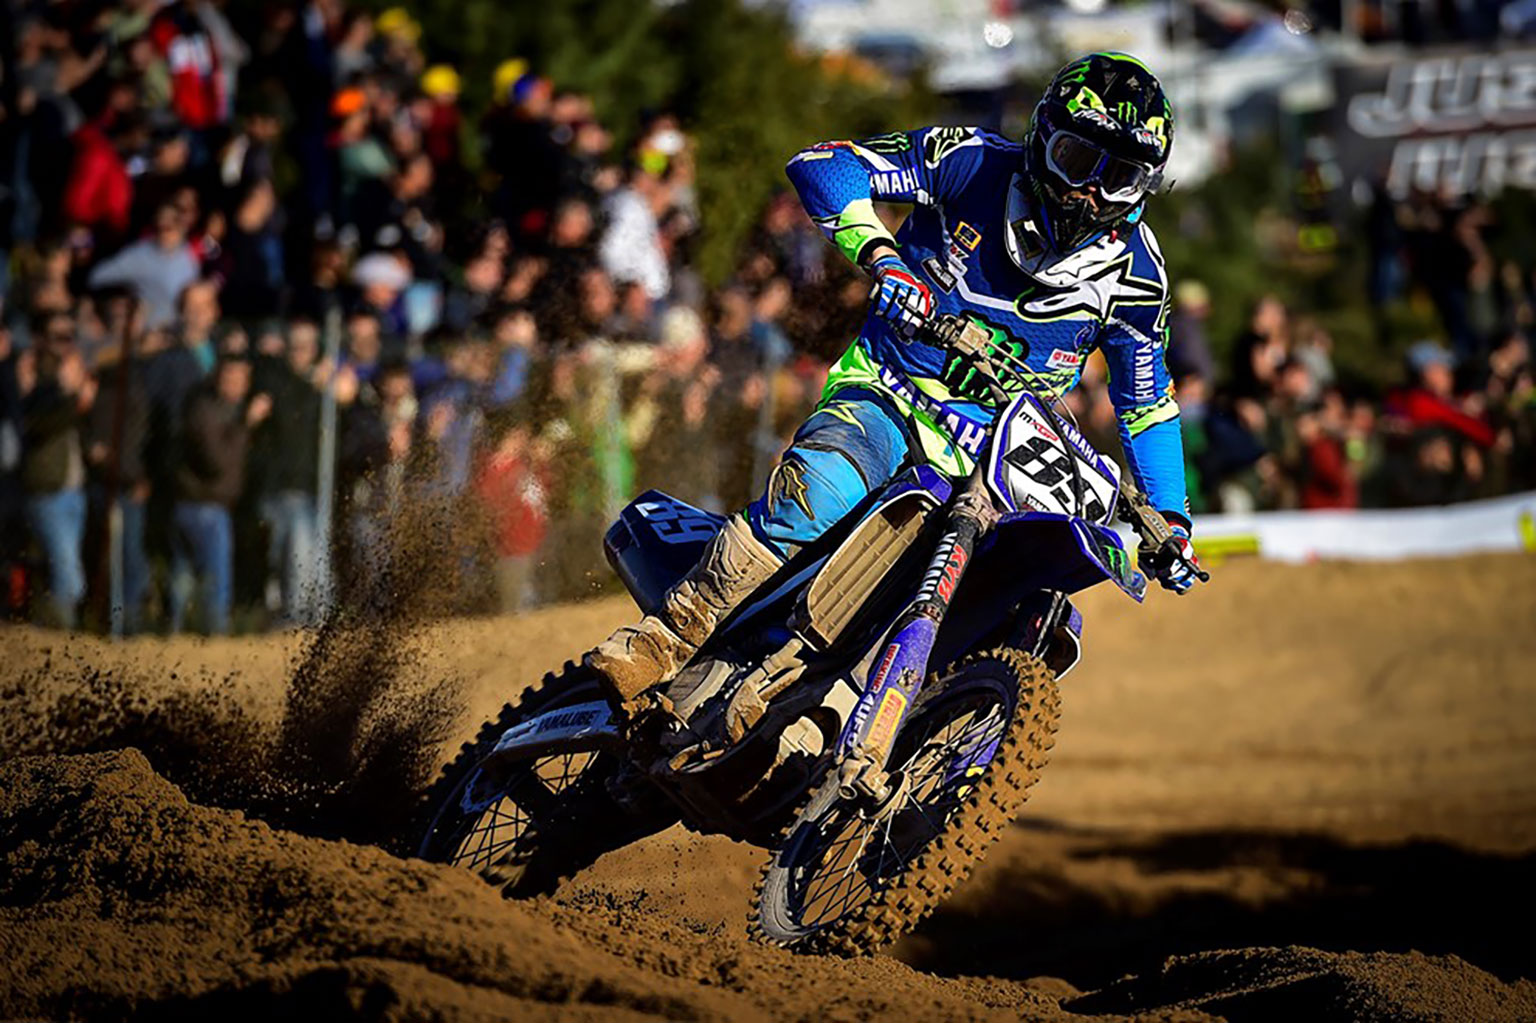 Van Horebeek took second